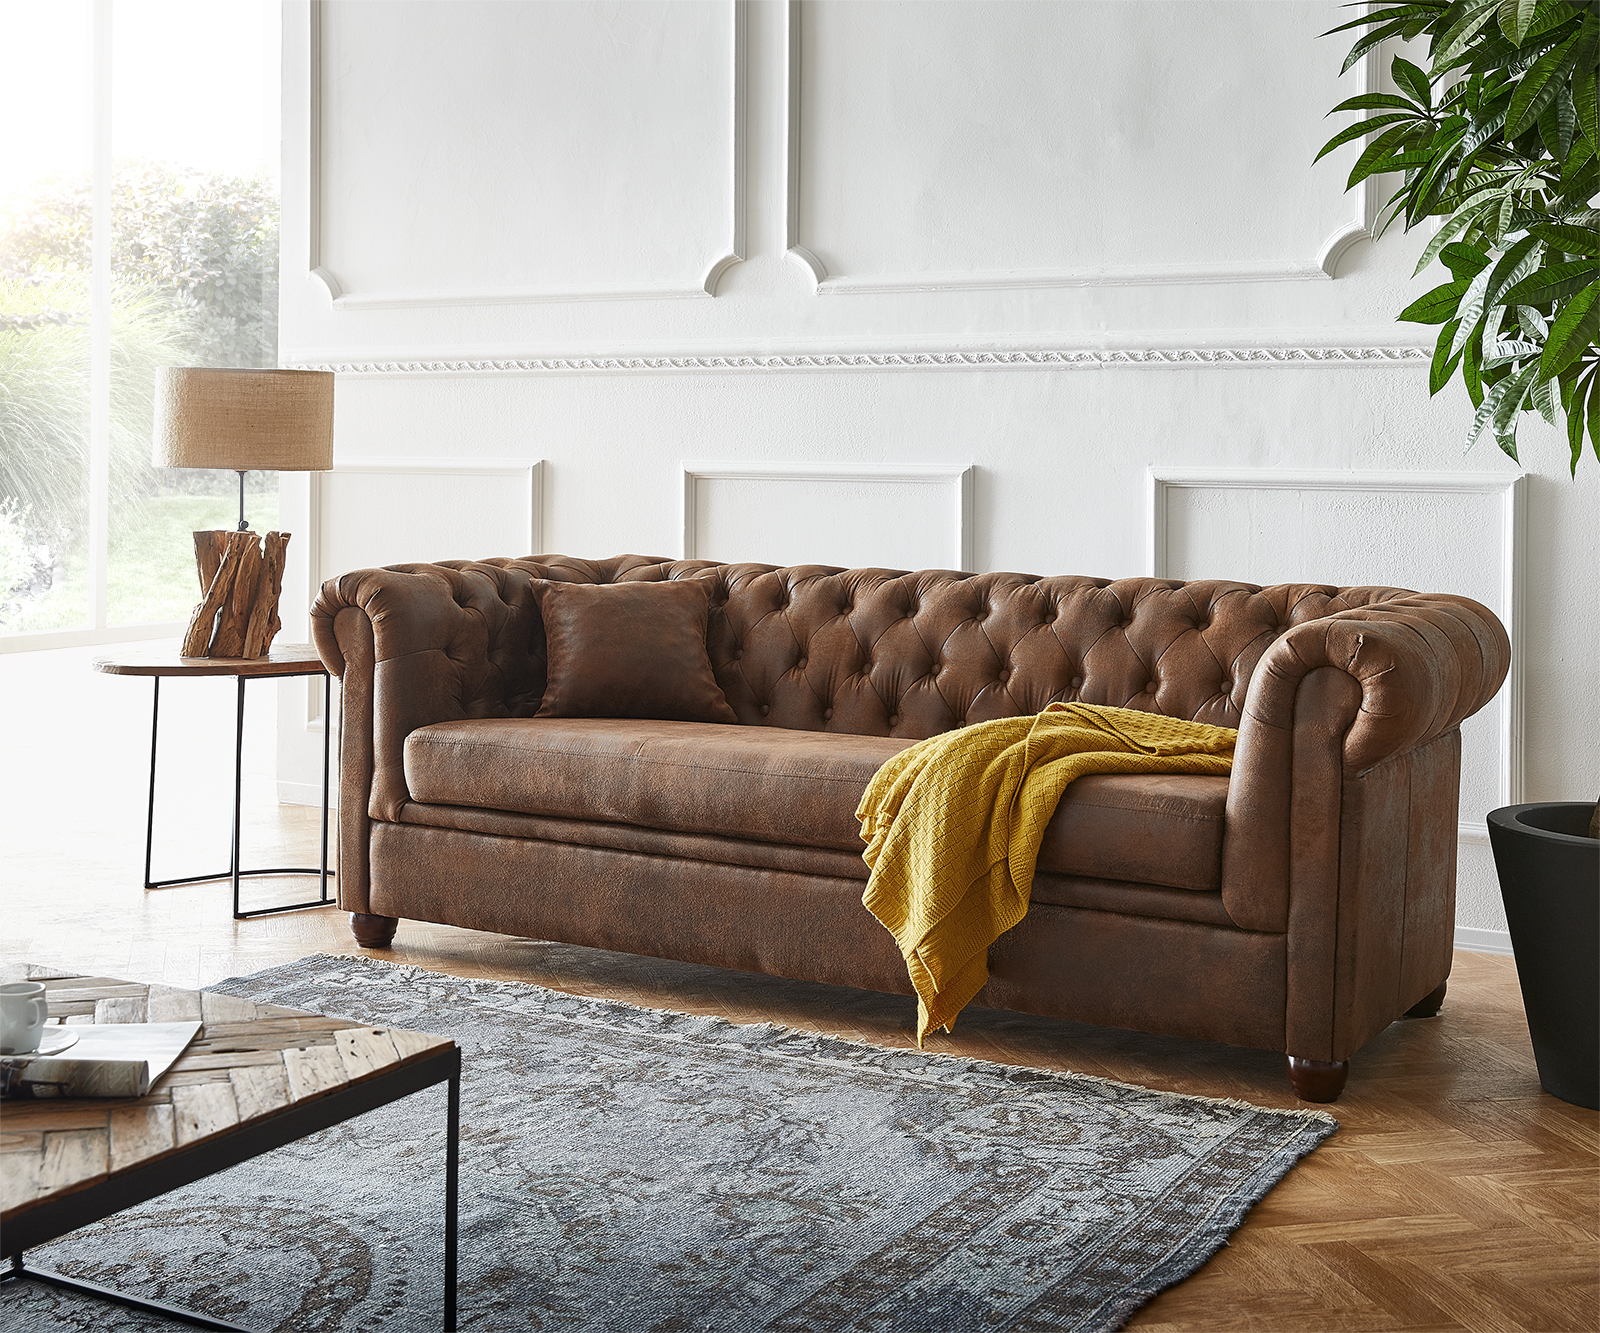 Sofa Chesterfield 200x88 Braun Vintage Optik 3-Sitzer Couch